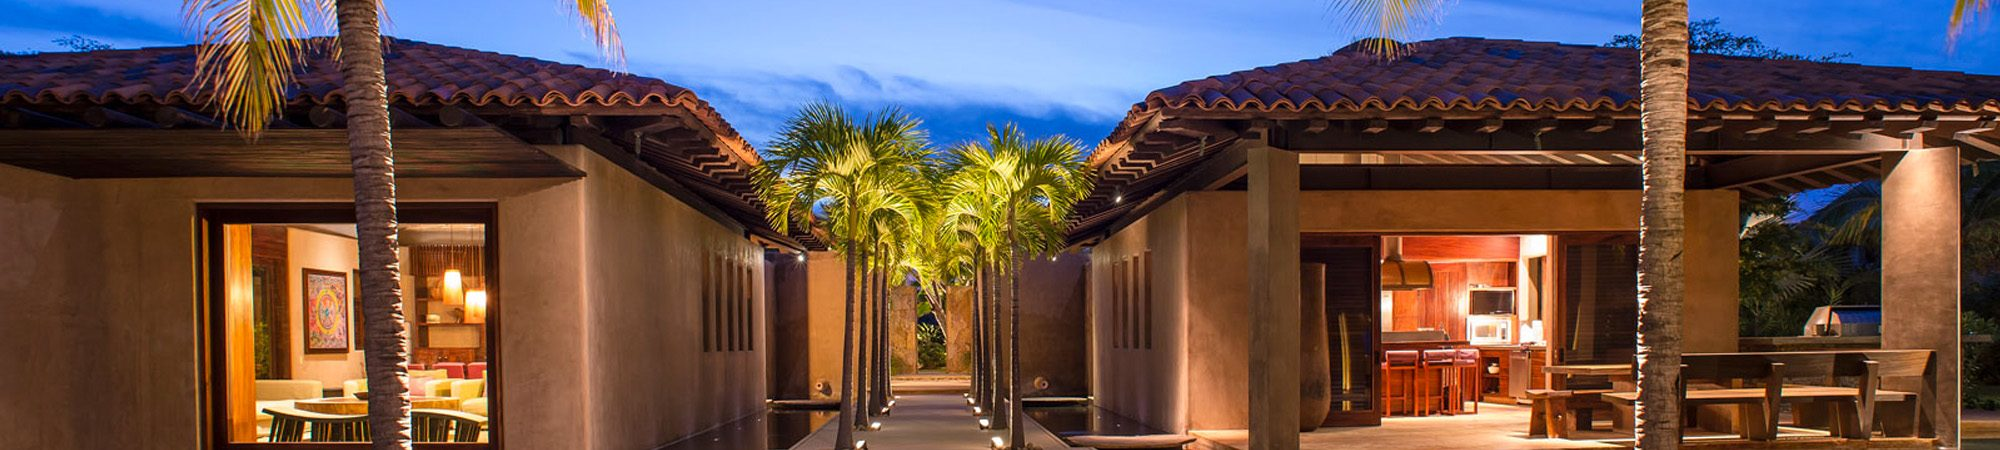 punta mita luxury villas | journey mexico